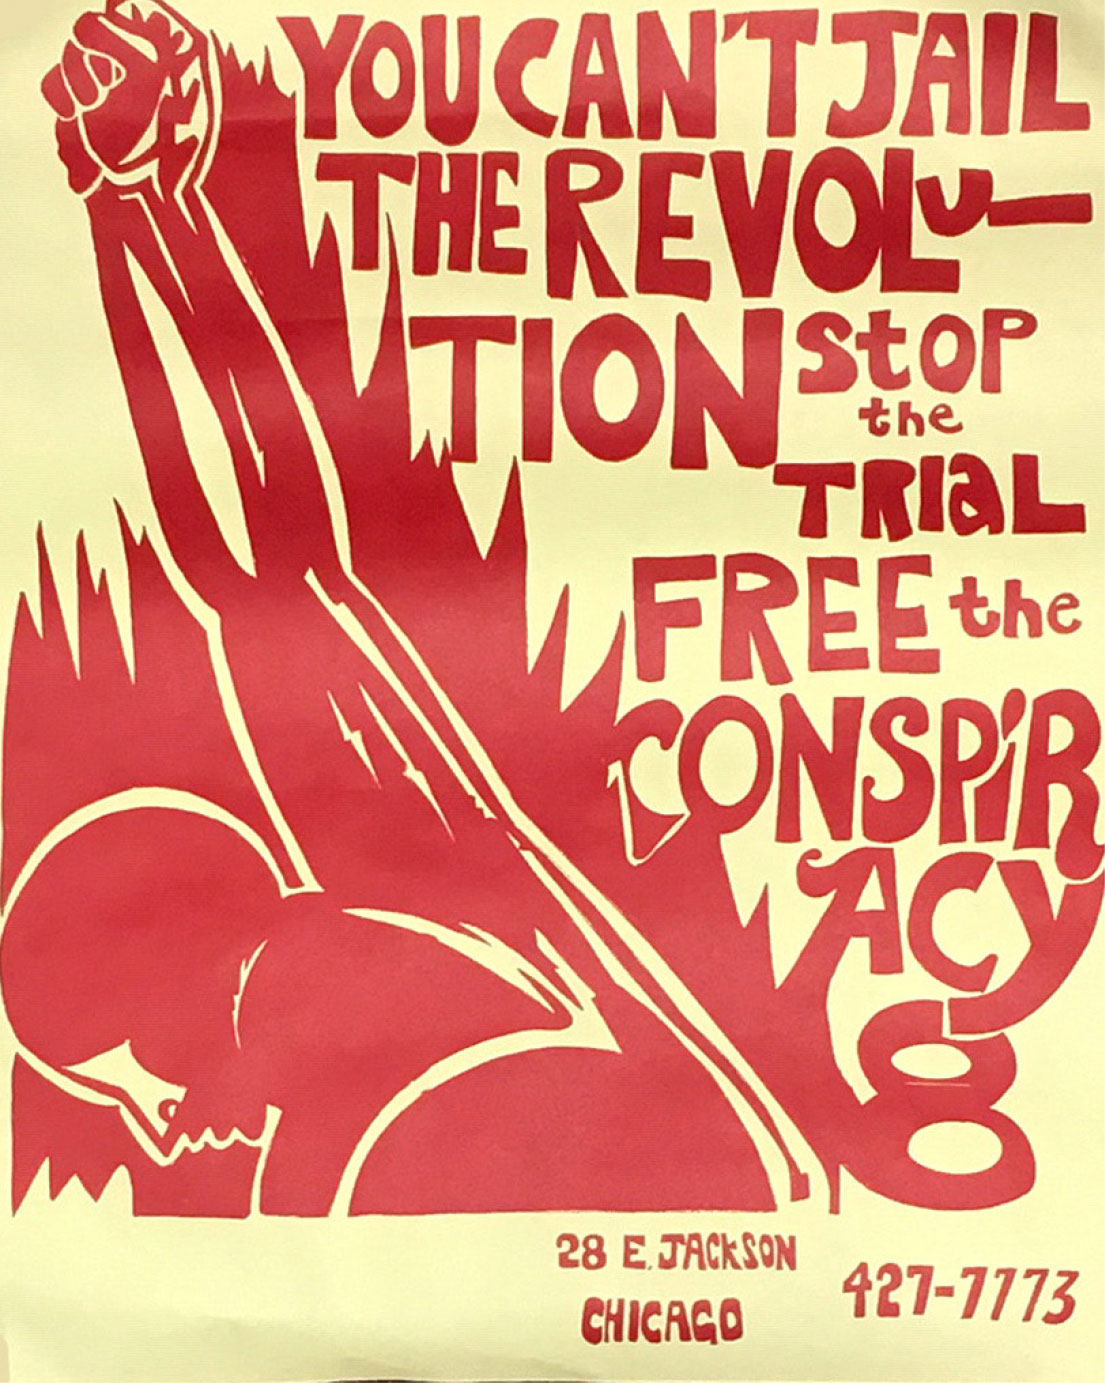 You Can't Jail the Revolution, Free the Chicago 8